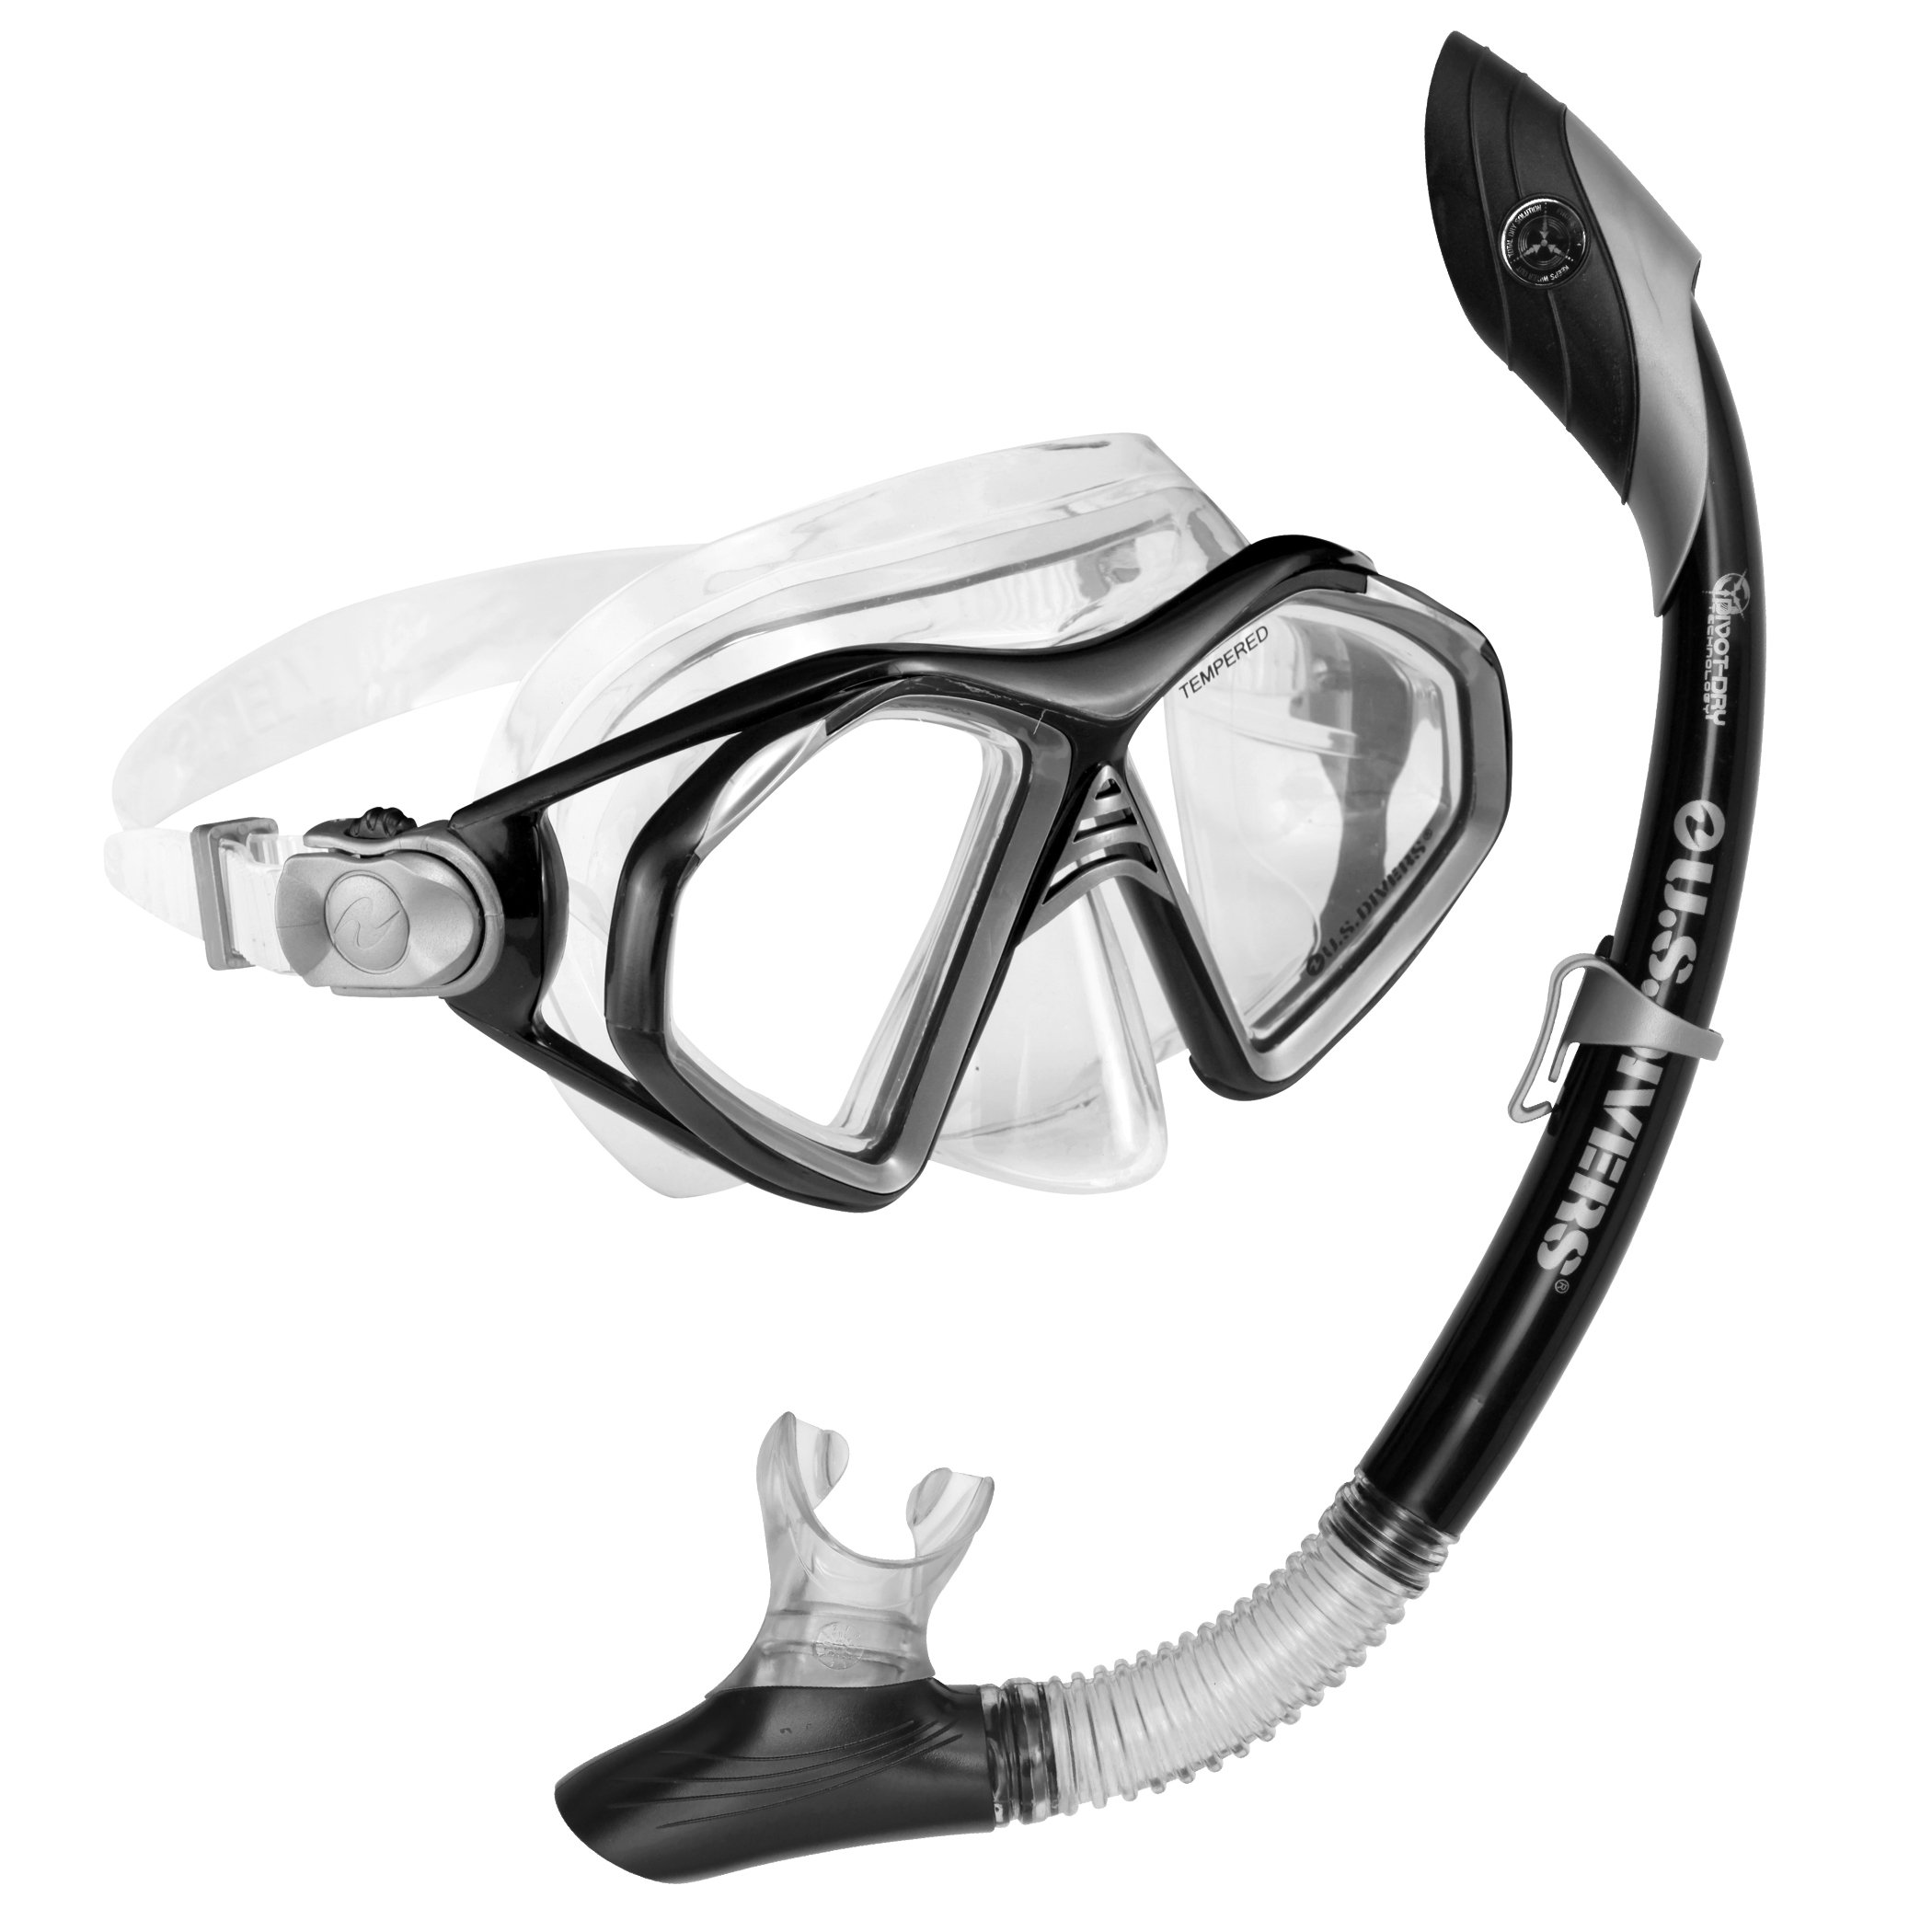 U.S. Divers Admiral 2 Lx / Island Dry Adult Silicone Mask Combo (Black) by U.S. Divers